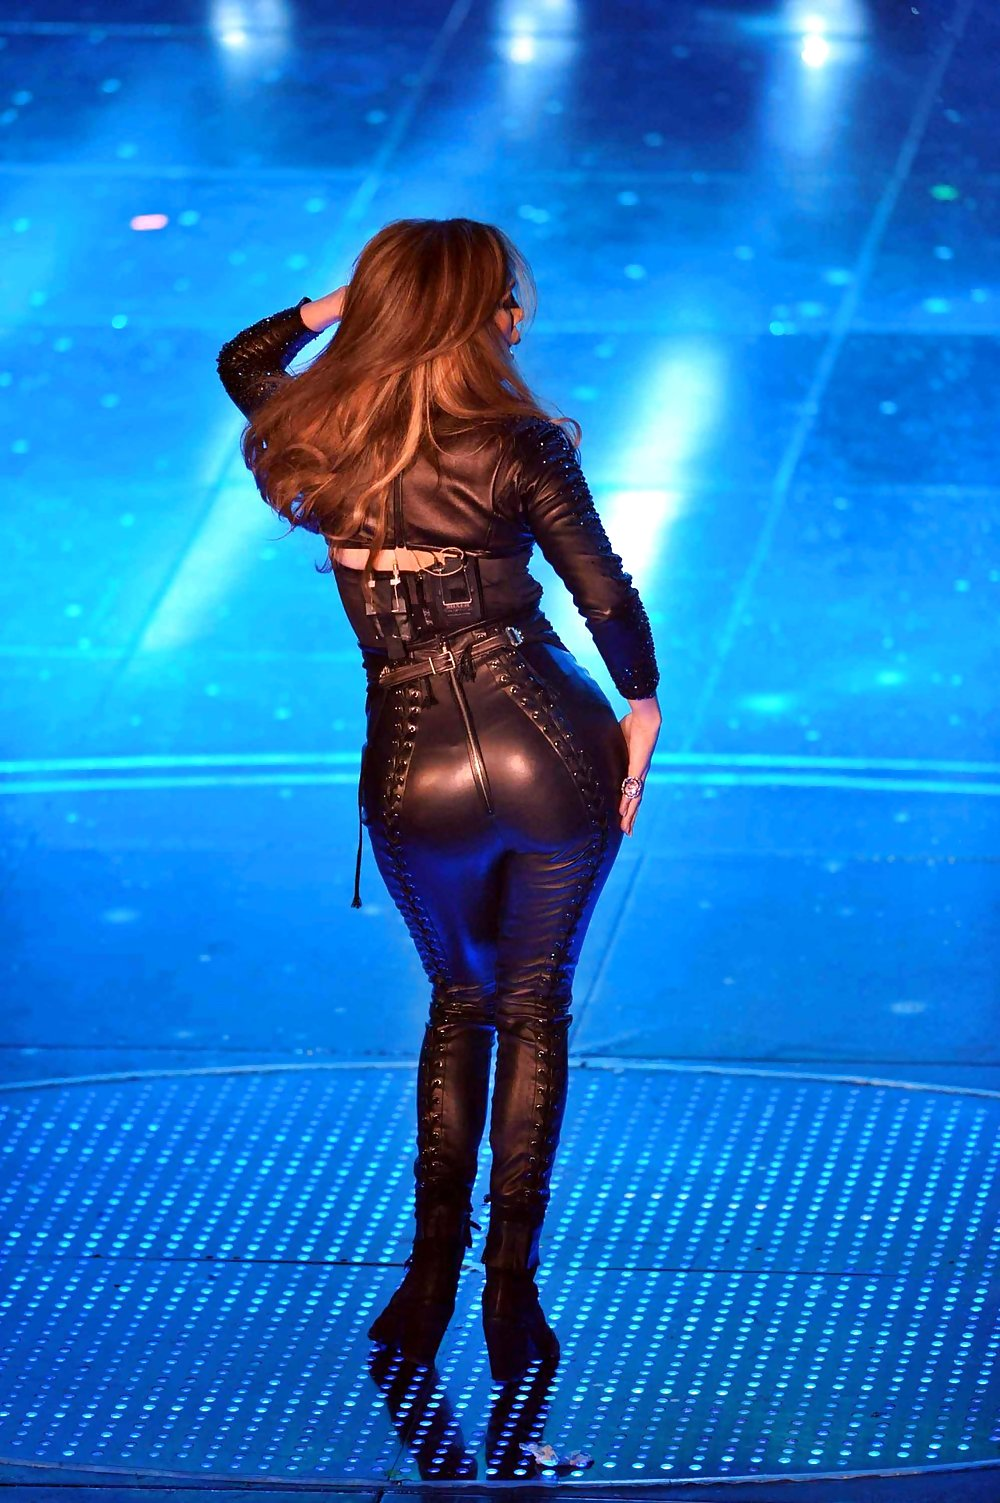 jlo-ass-pic